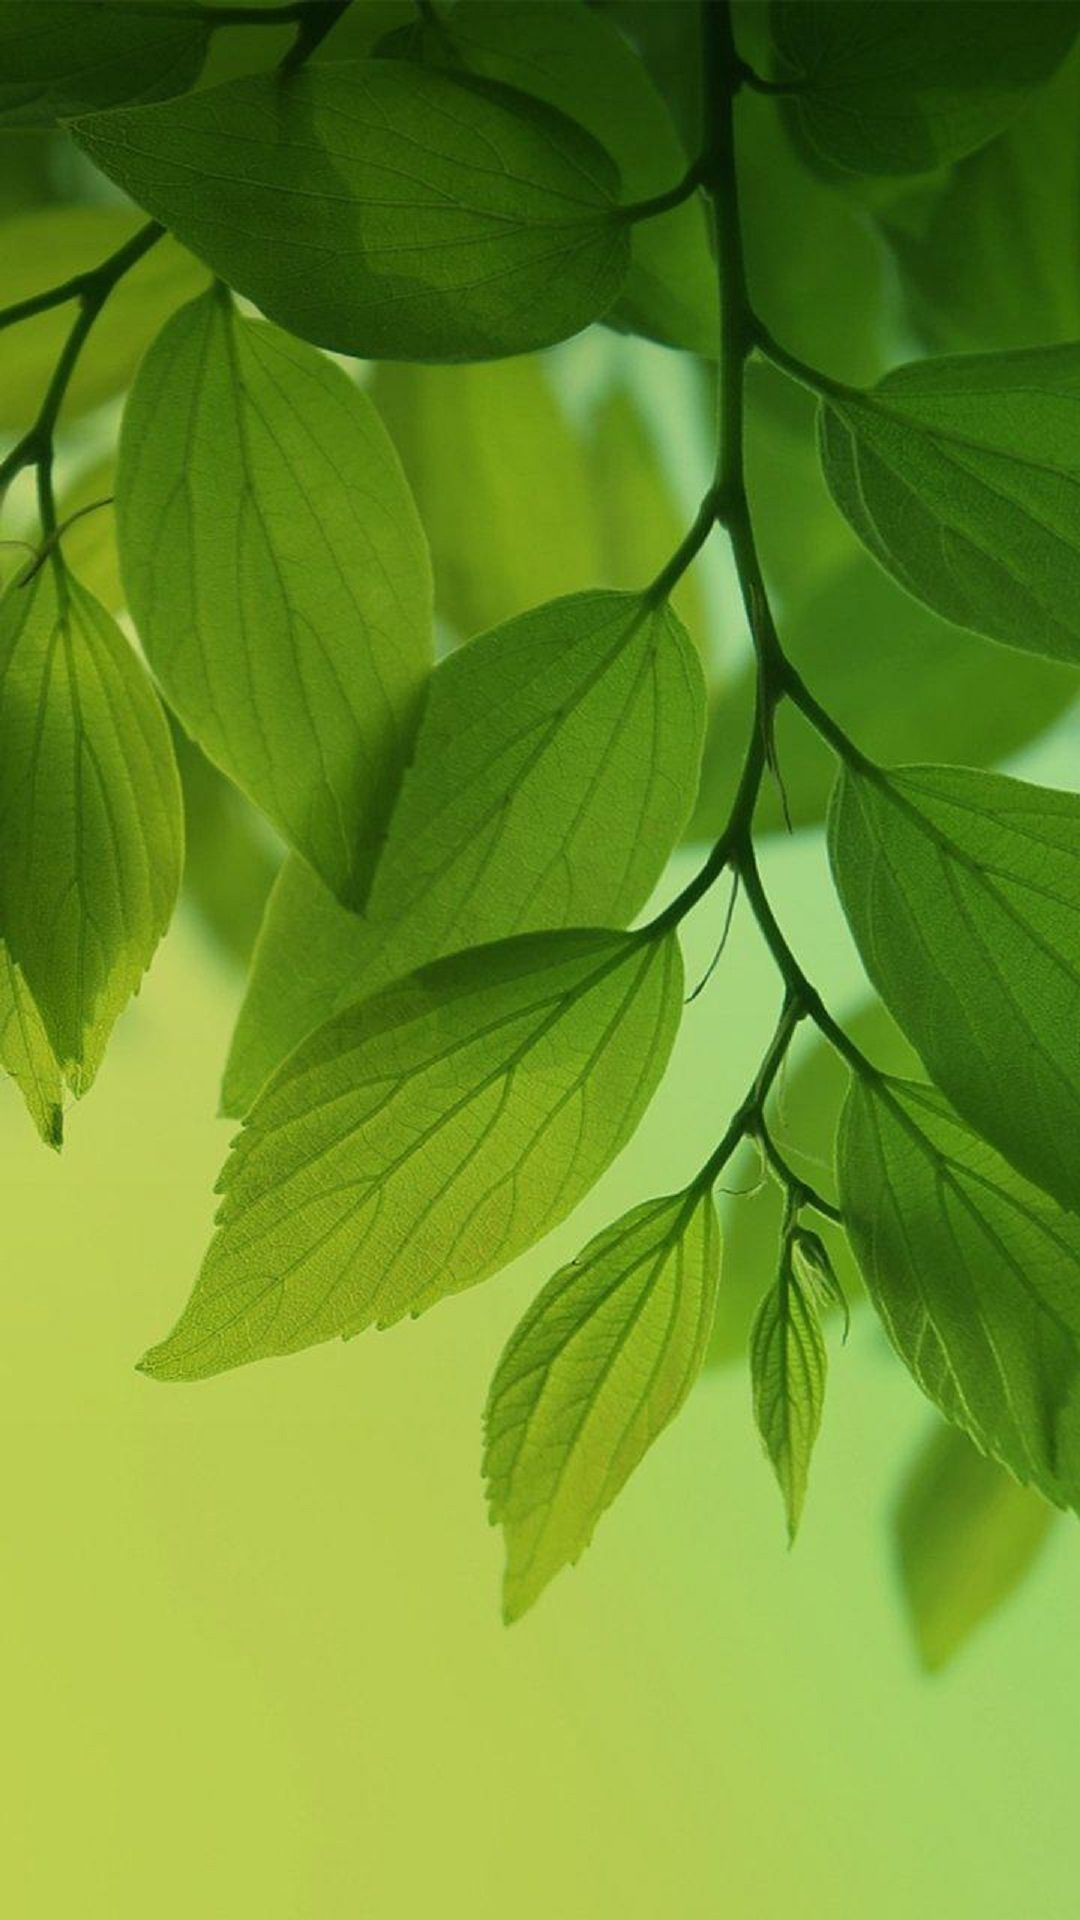 Green Leaves Wallpaper 66 Images